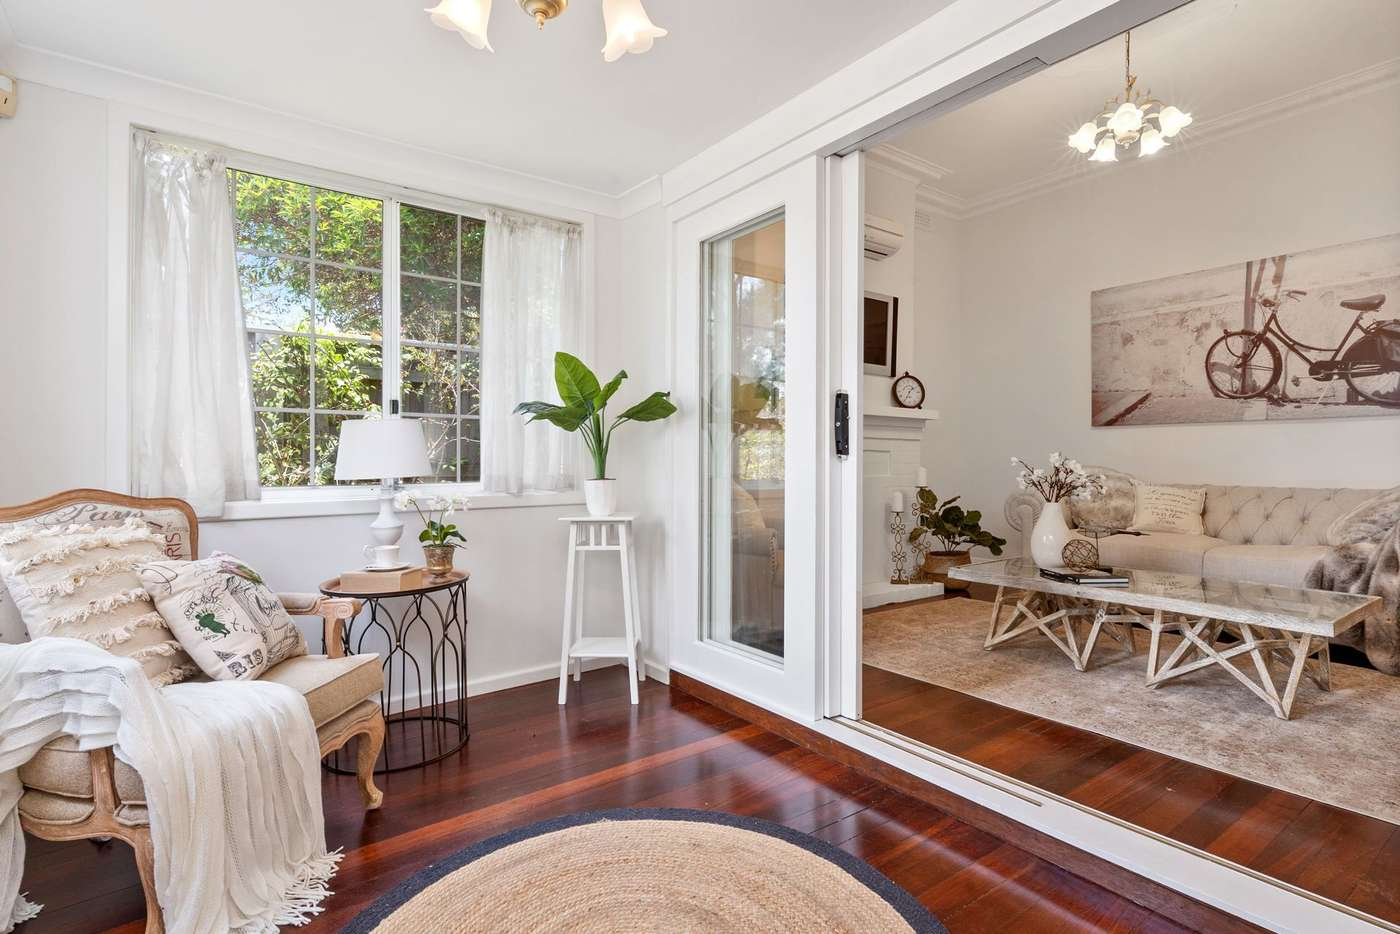 Main view of Homely house listing, 118 Aberdare Road, Shenton Park WA 6008